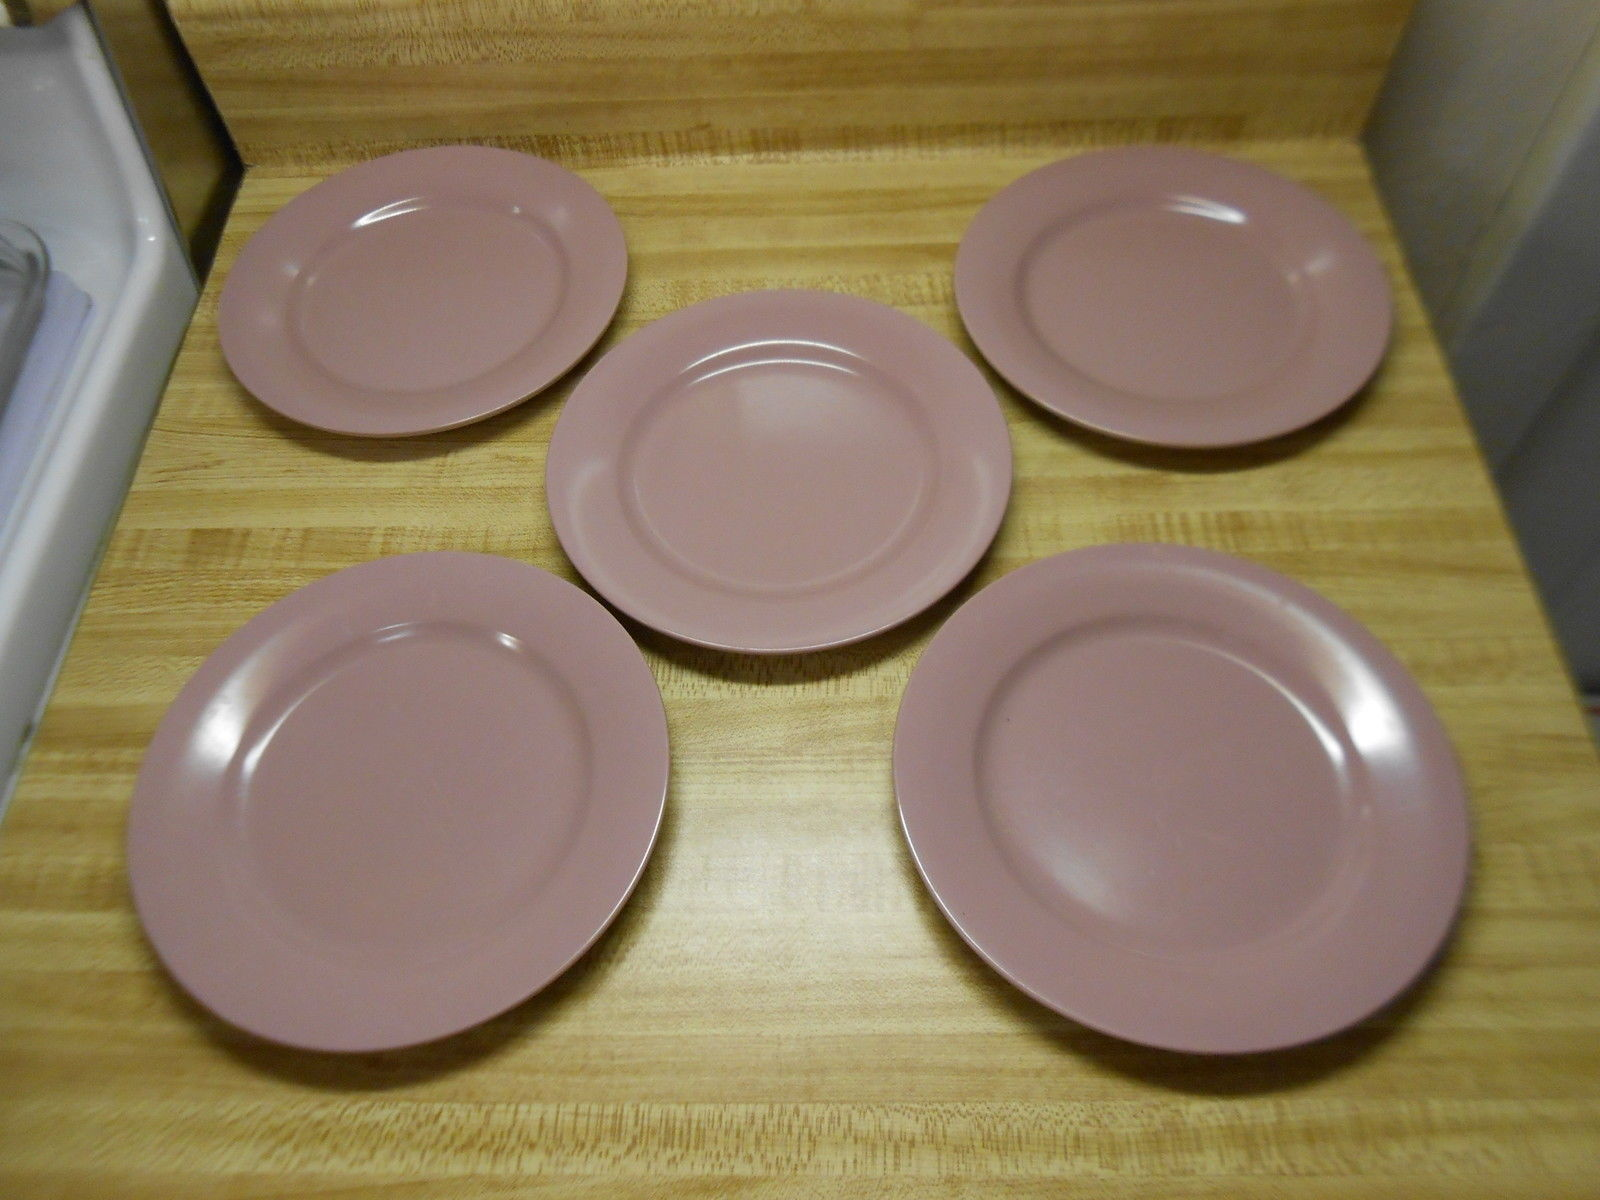 Elan plates lot of 5 plastic Elan Plates by Plastics Manufacturing Company & Elan plates lot of 5 plastic Elan Plates by and 21 similar items